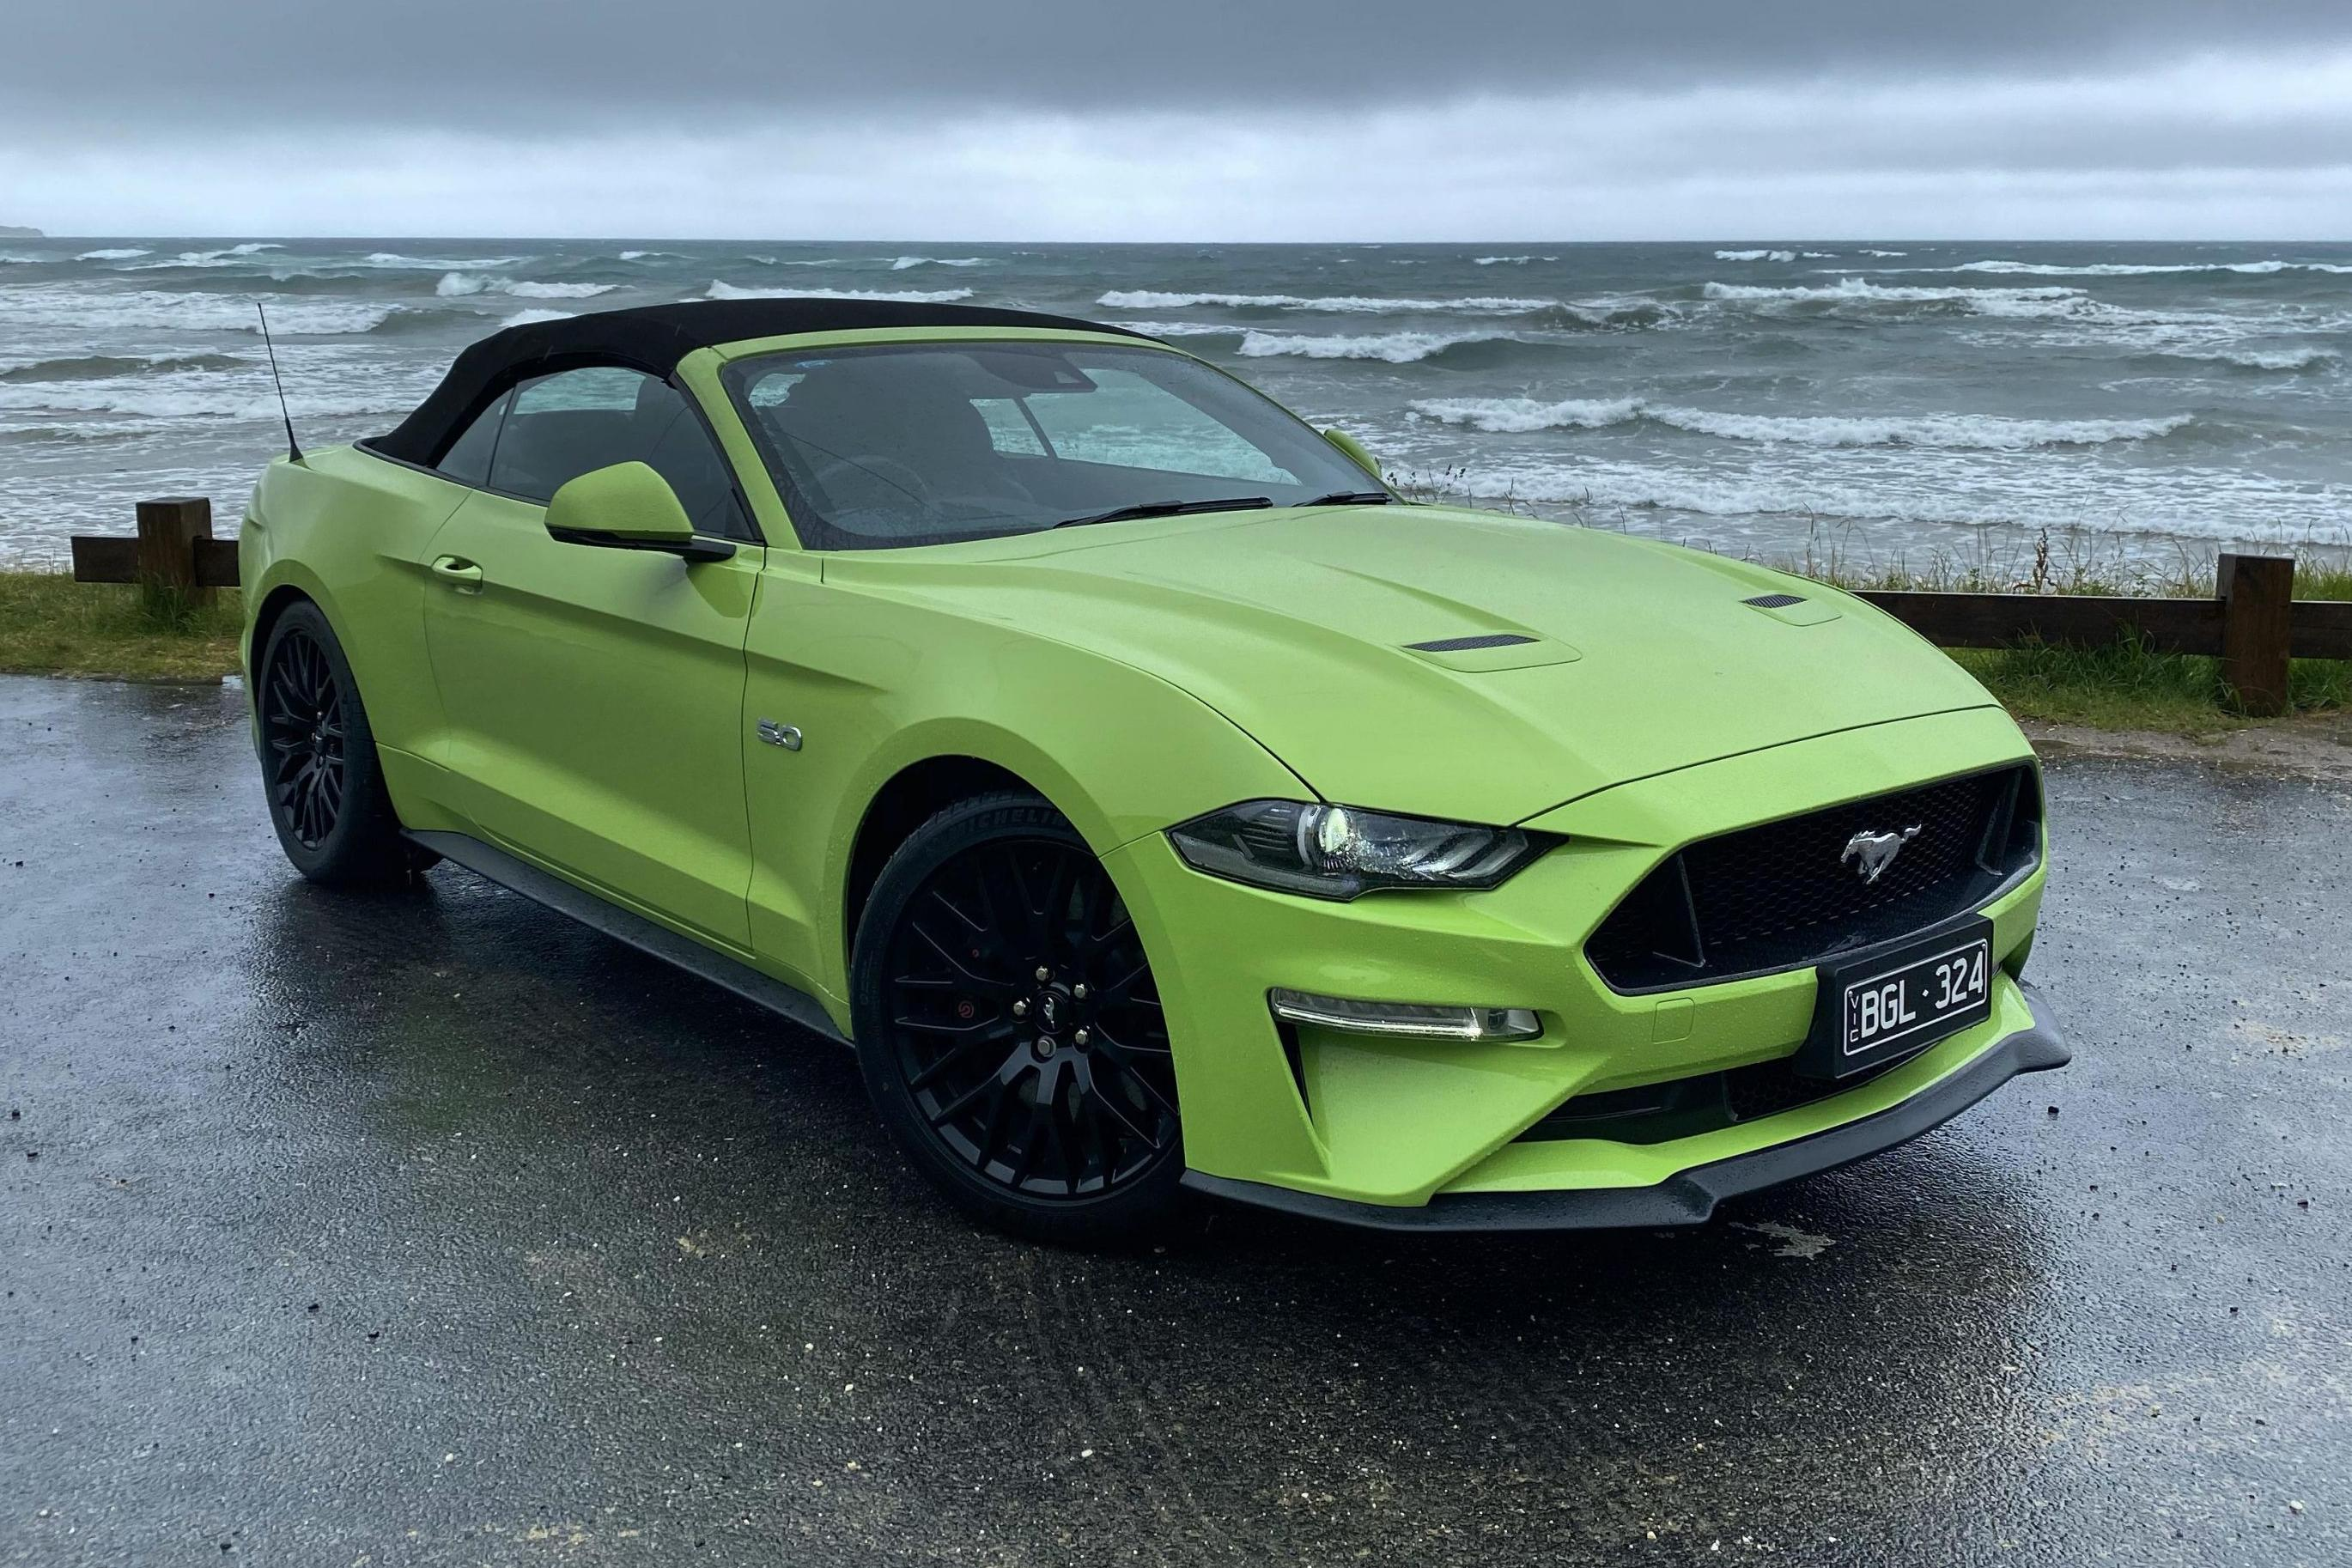 2021 Ford Mustang GT Convertible review